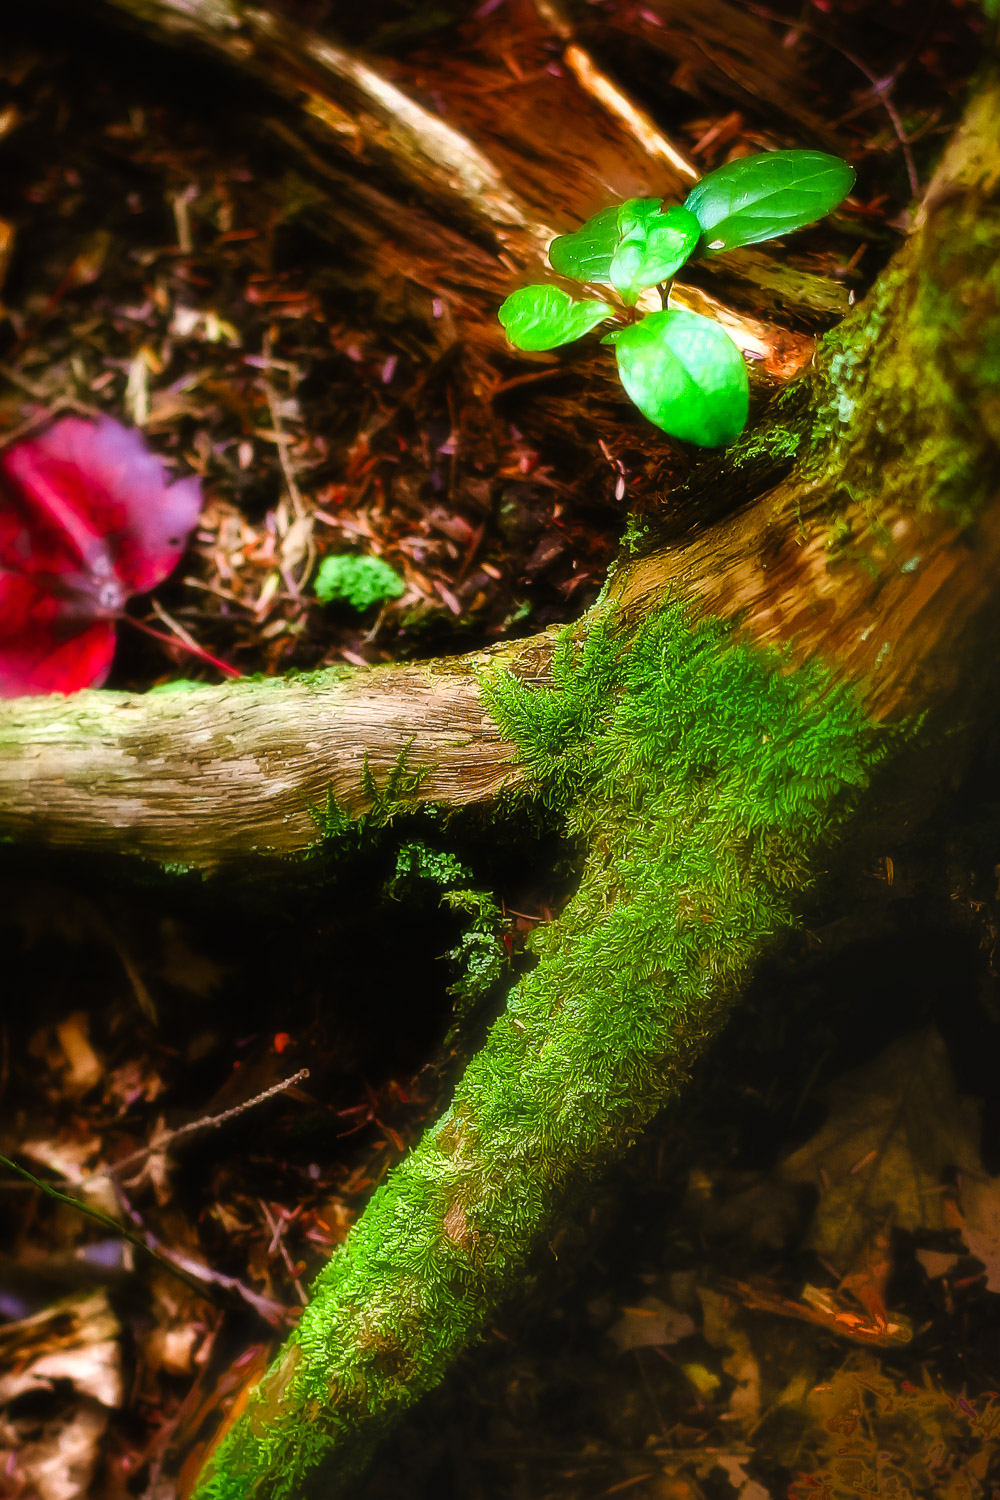 Forest-Floor-Moss-And-Plants.jpg